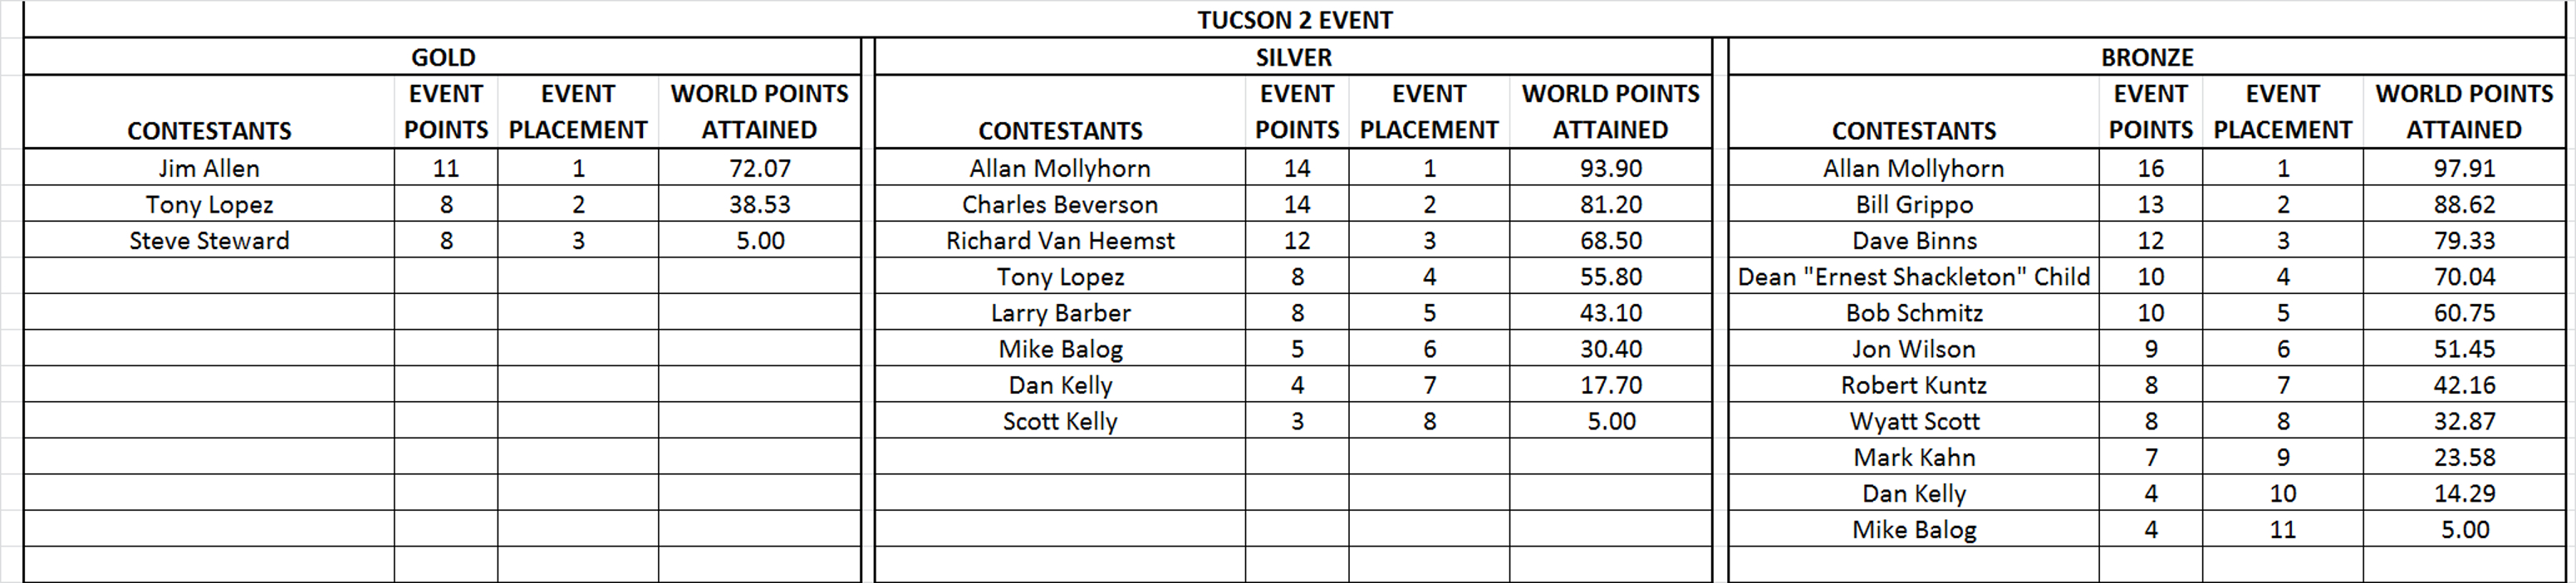 Click image for larger version  Name:Tucson 2.jpg Views:53 Size:758.6 KB ID:2240951